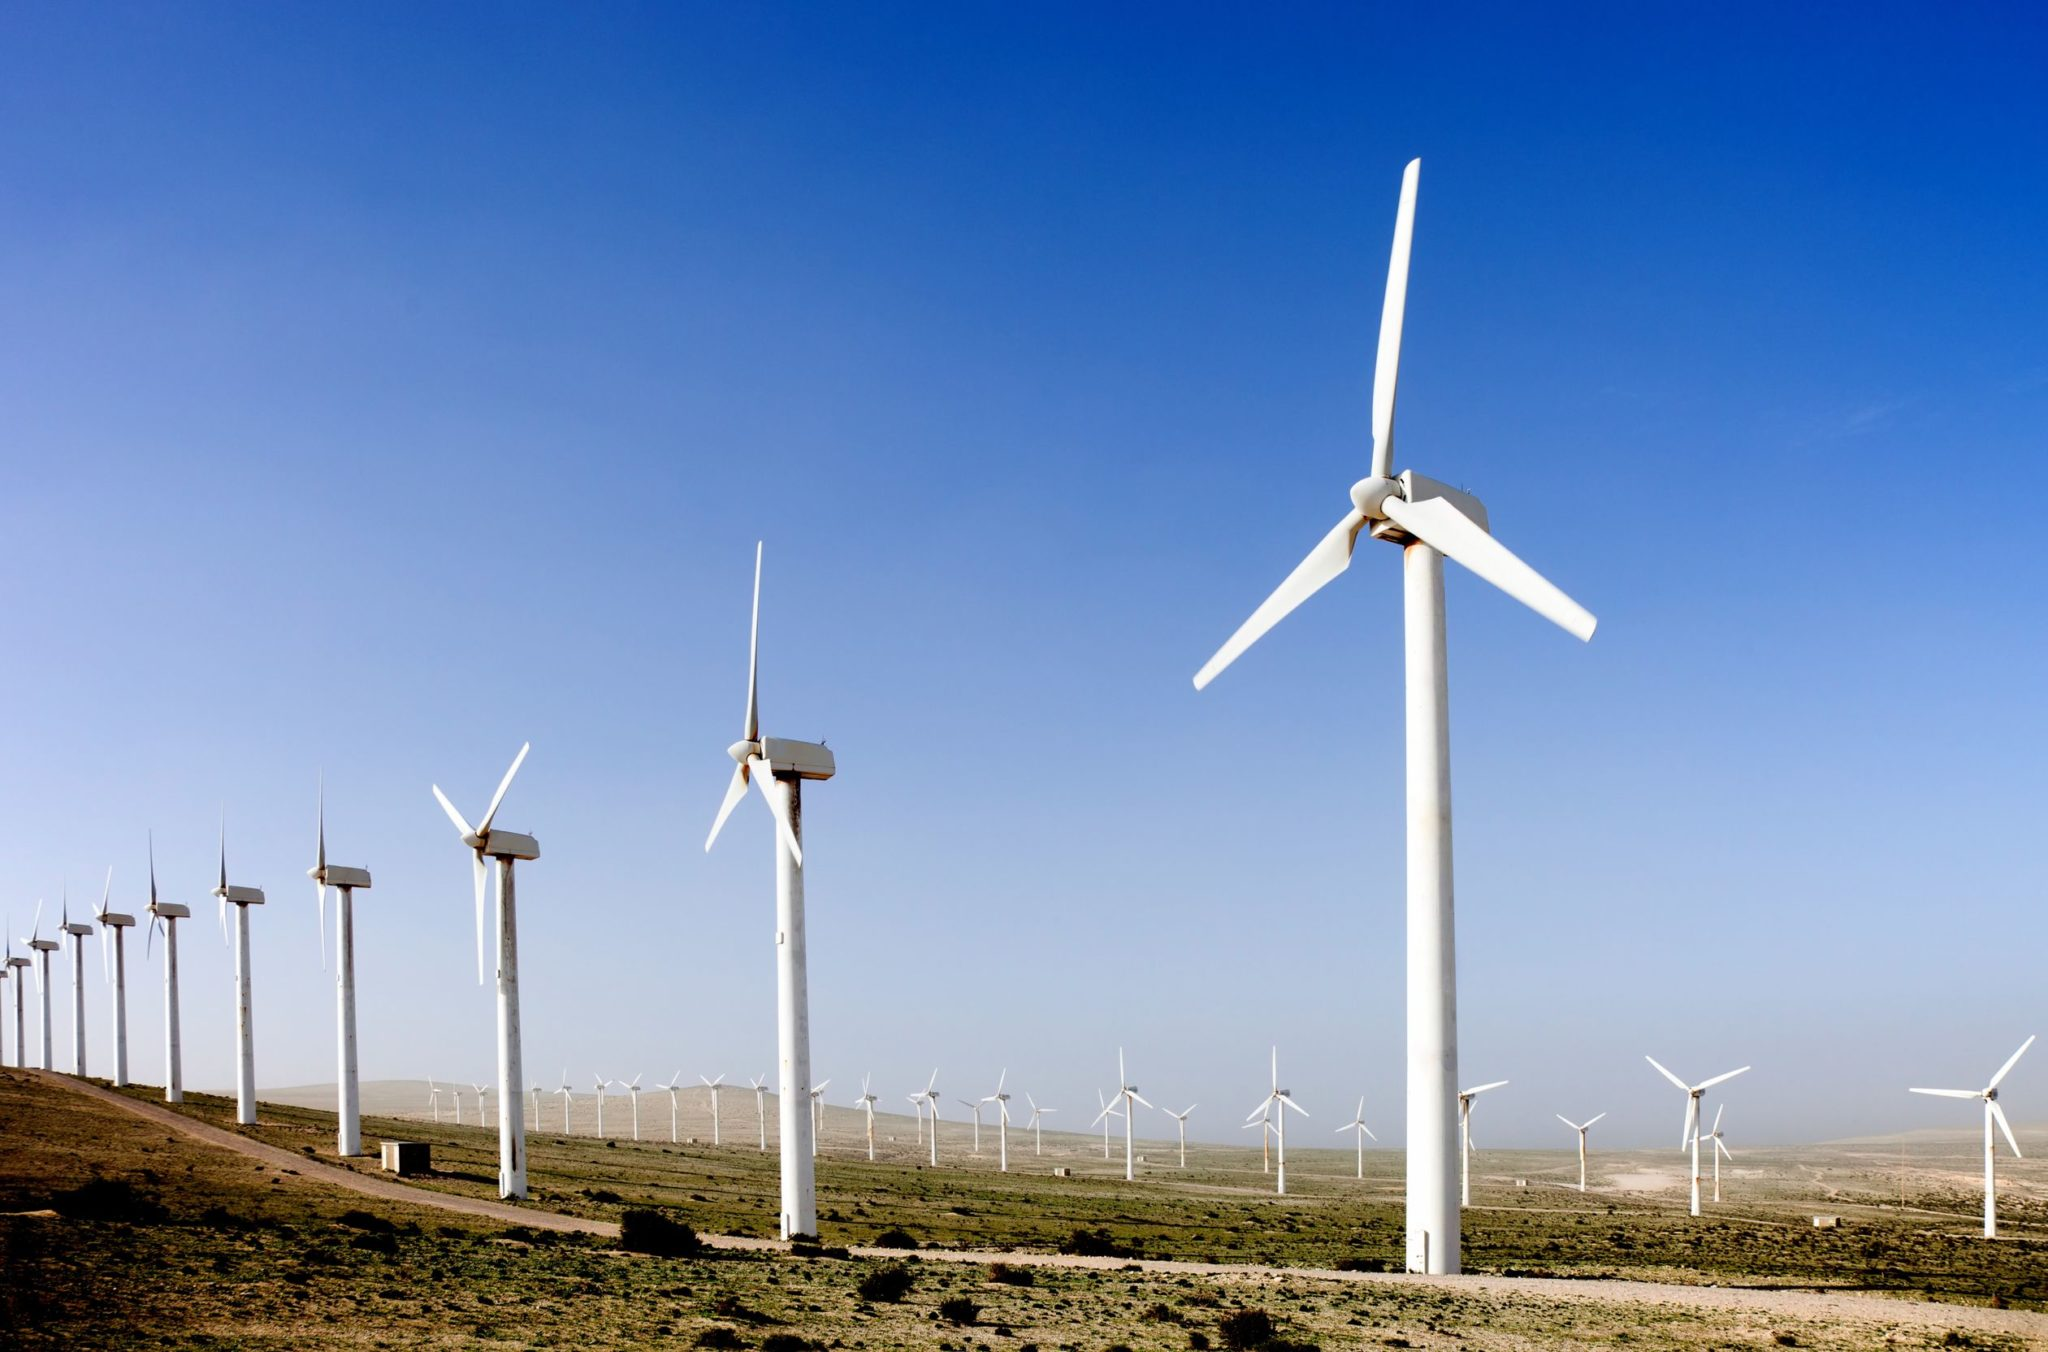 Industrial IoT case study Envision rethinks wind turbines